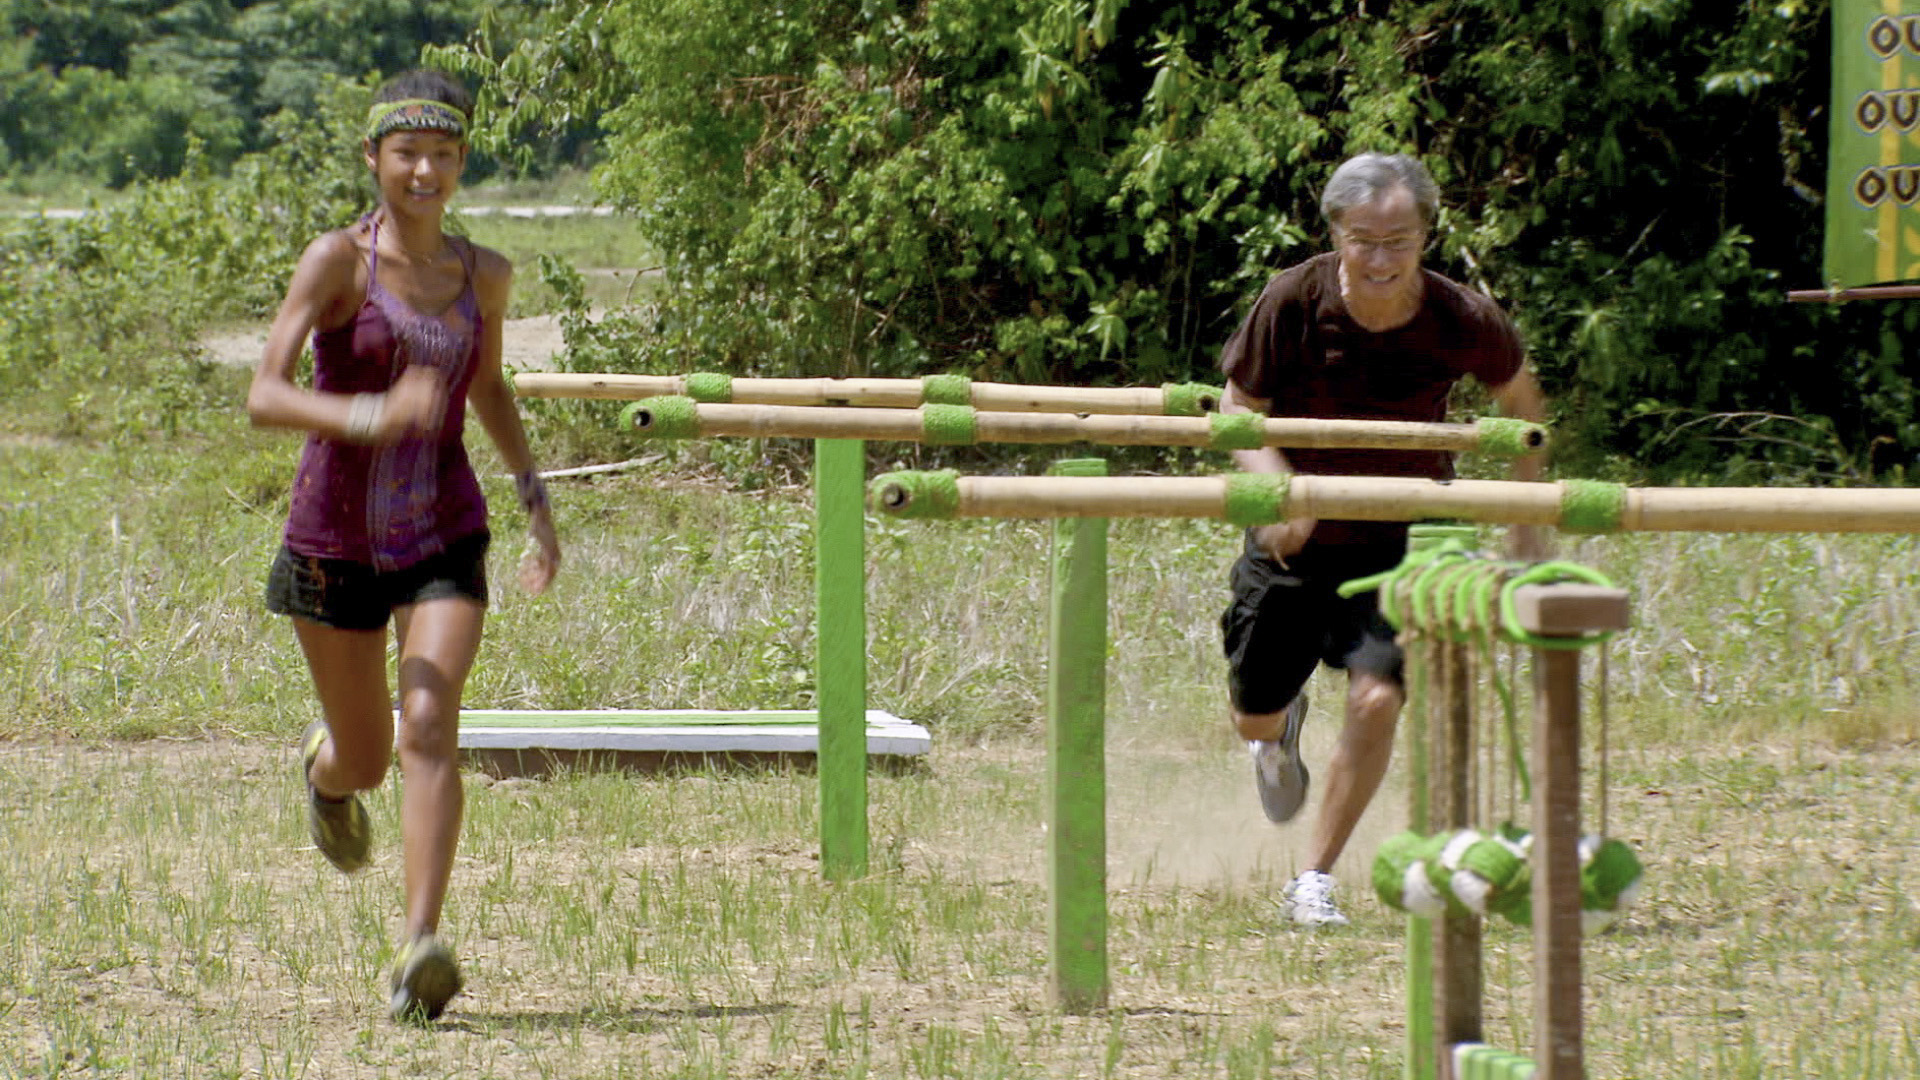 Brenda and her father compete in